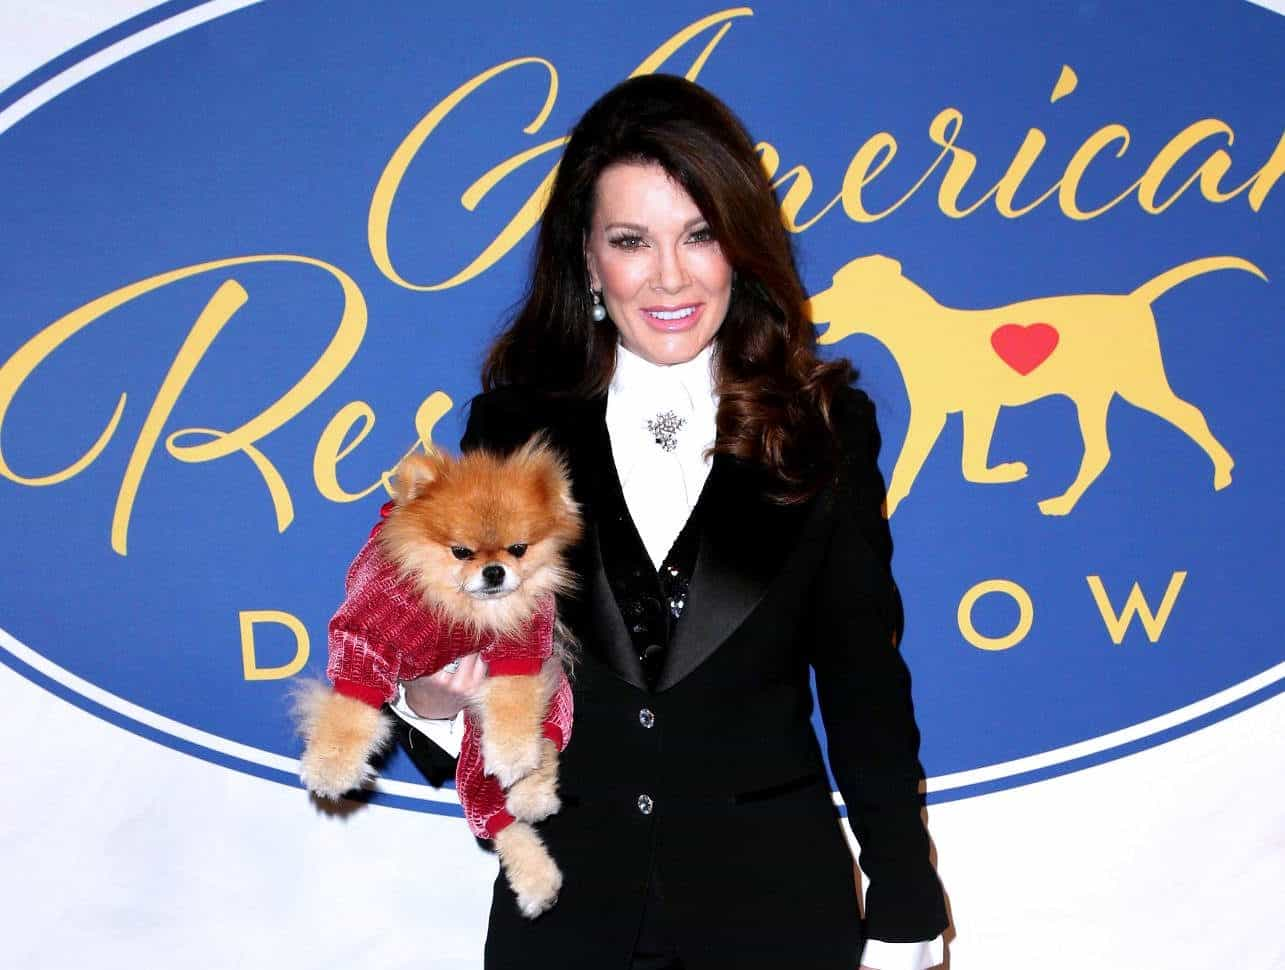 Is Lisa Vanderpump's New Vanderpump Dogs Spinoff Still In The Works?